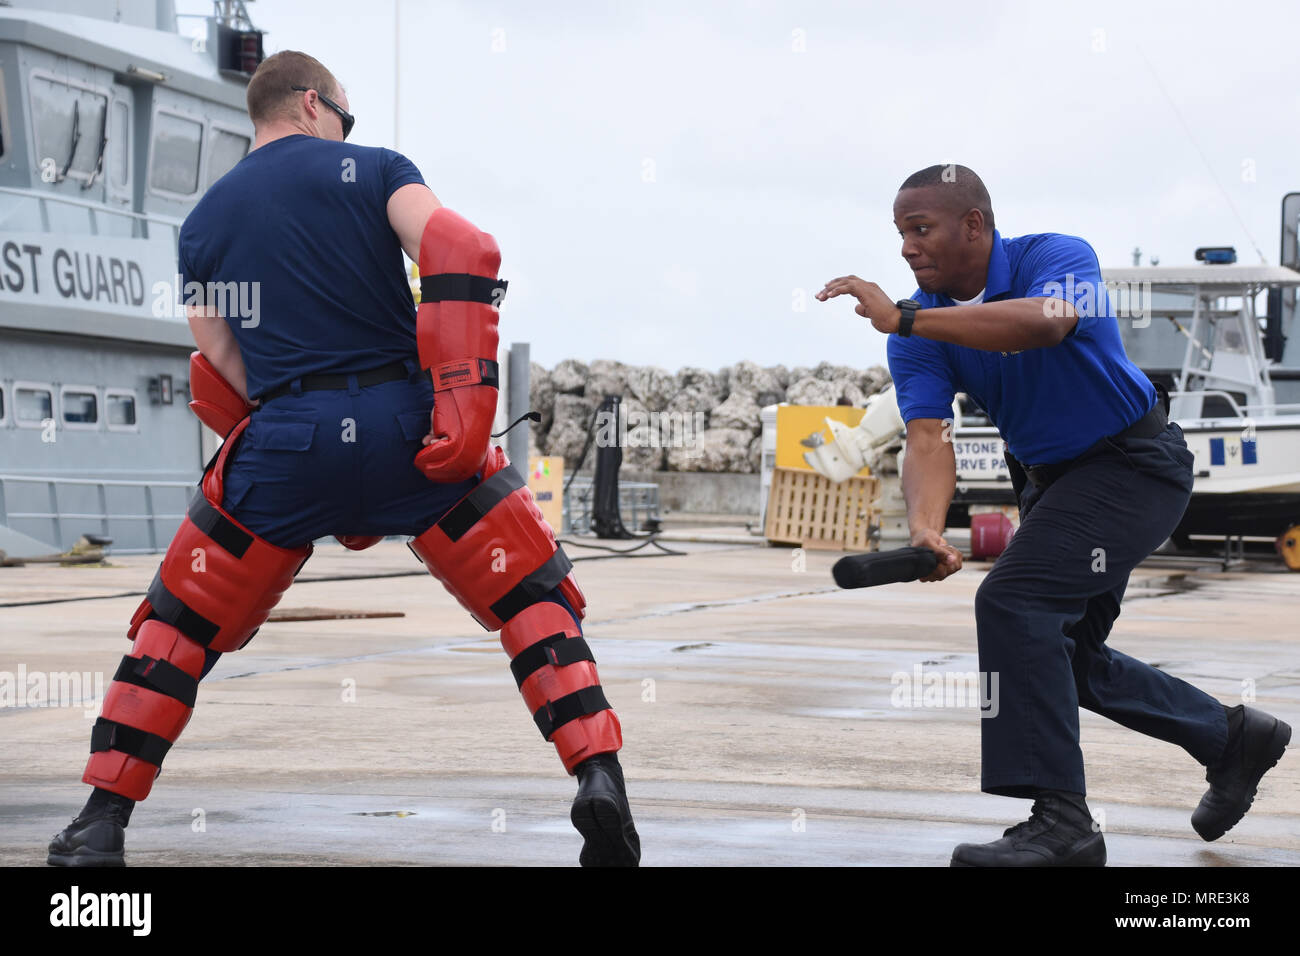 Steven Celestine, a member of the Commonwealth of Dominica Coast Guard, practices law enforcement techniques during Exercise Tradewinds 2017 at the Barbados Coast Guard Base in Bridgetown, Barbados, June 9, 2017. Tradewinds 2017 is a joint, combined exercise conducted in conjunction with partner nations to enhance the collective abilities of defense forces and constabularies to counter transnational organized crime, and to conduct humanitarian/disaster relief operations. (U.S. Coast Guard photo by Petty Officer 1st Class Melissa Leake/Released) - Stock Image